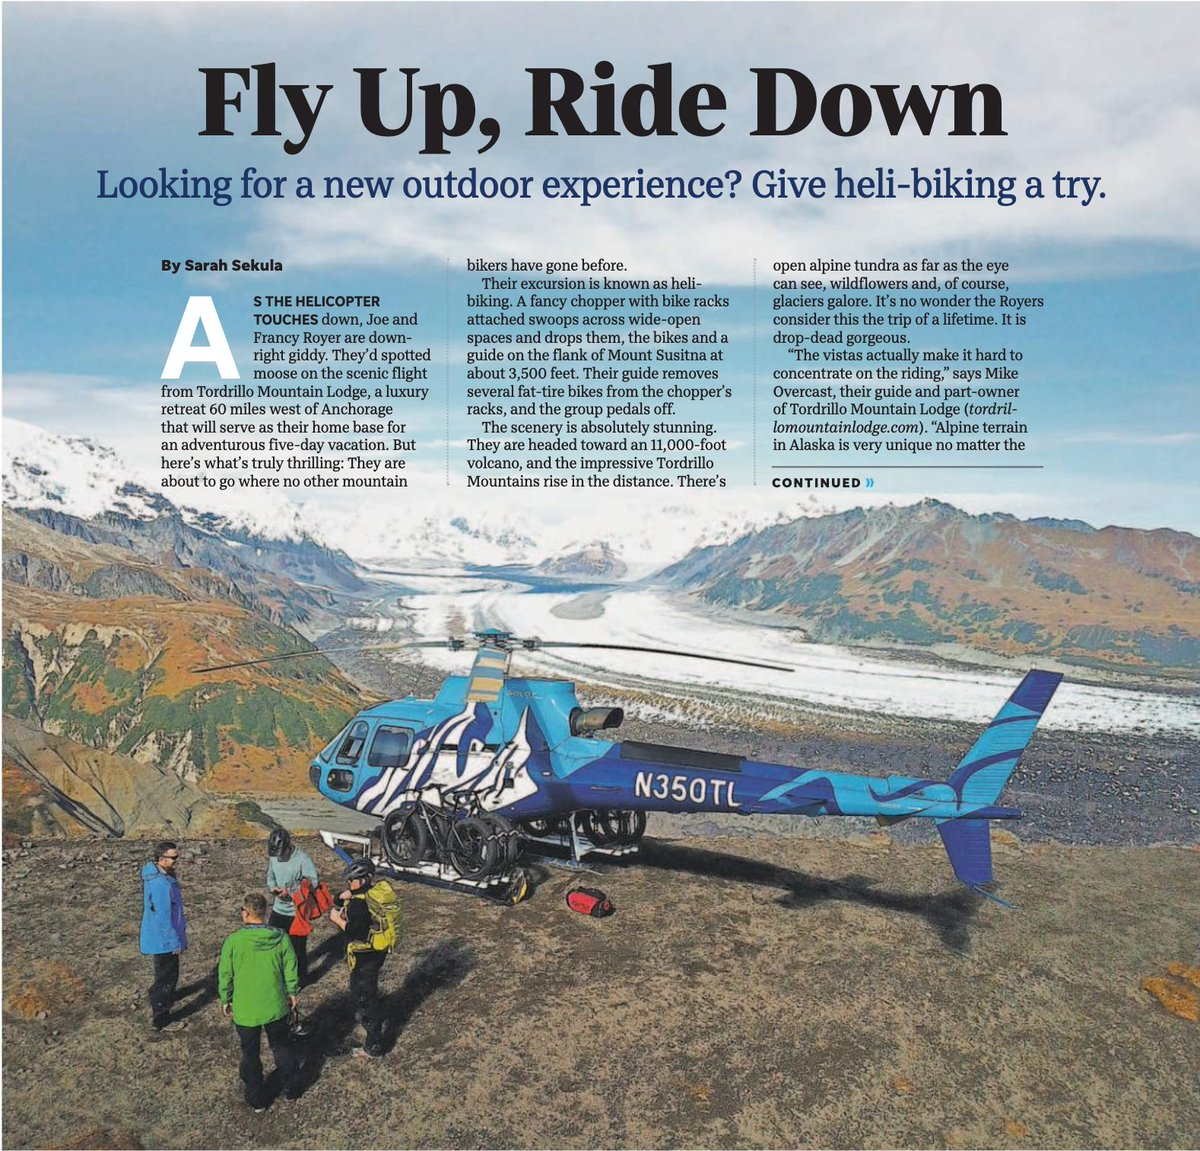 Tordrillo Mtn Lodge On Twitter We Are Honored To Have A 2 Page Spread In The Newest Issue Of The Usatoday Written By Our Friend Wordzilla Heli Biking Is Just One Of